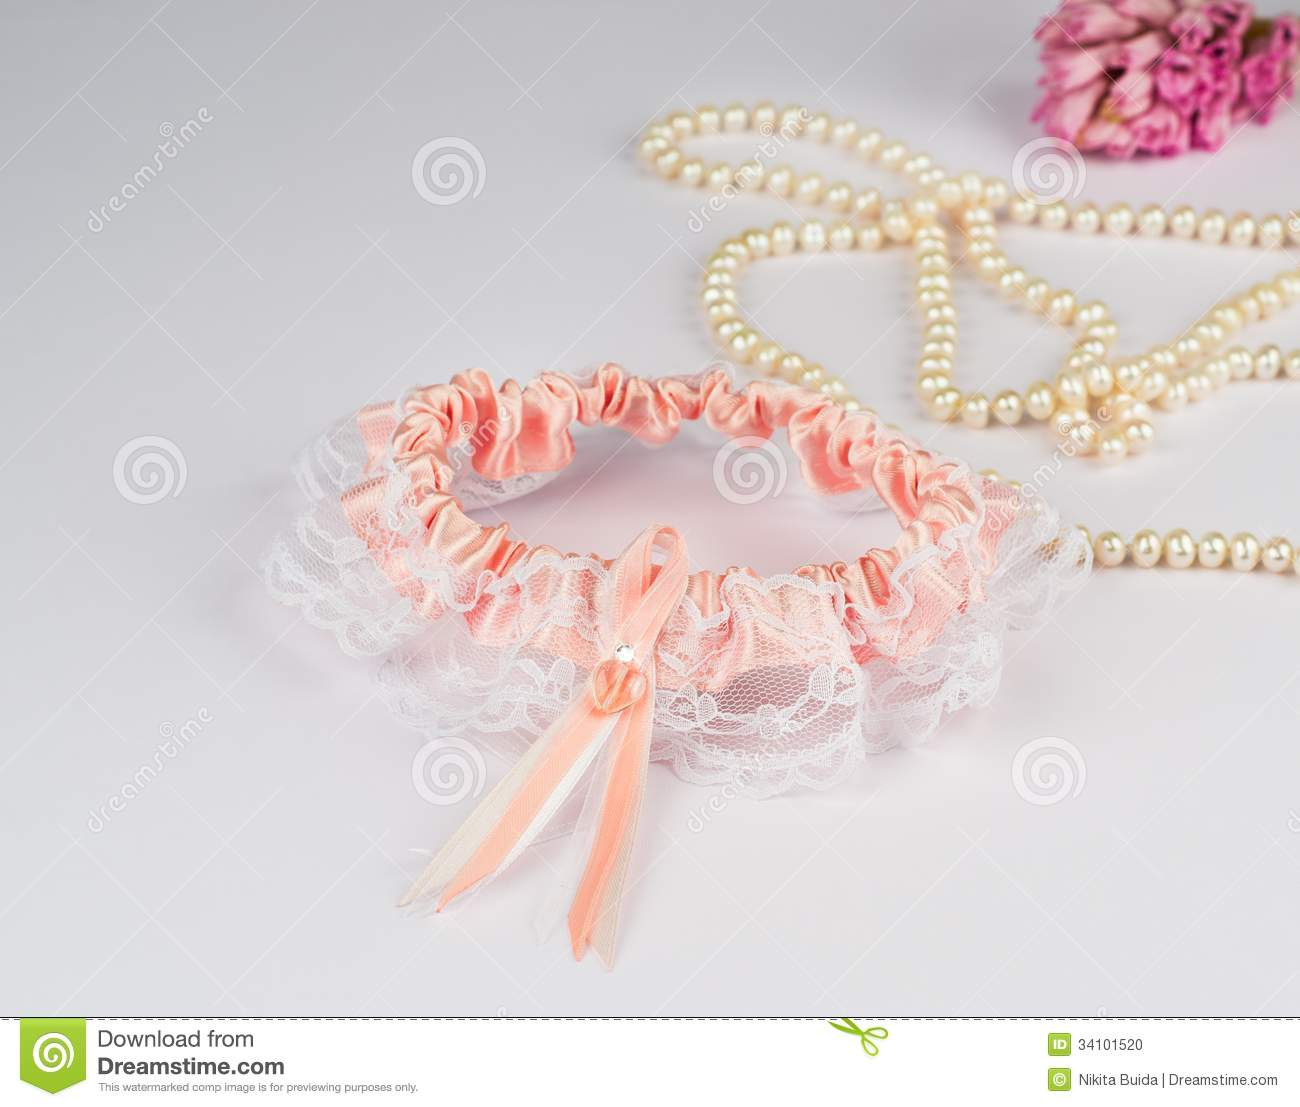 Garter Of The Bride Stock Photo. Image Of Belt, Beautiful